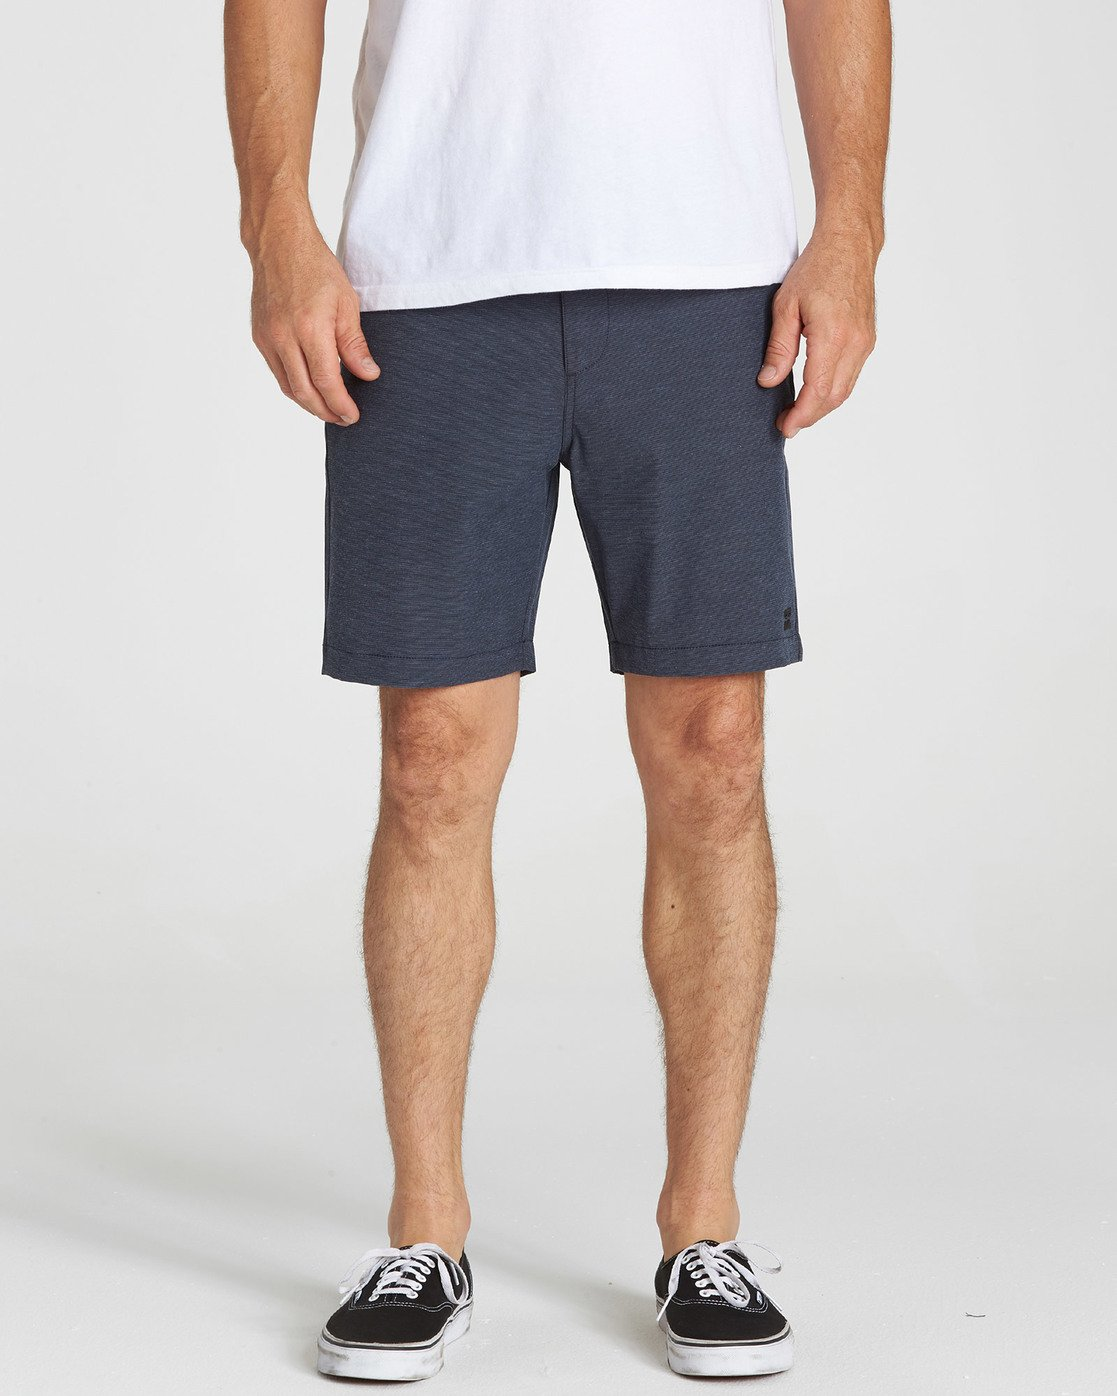 29d549486a Crossfire X Mid Length Submersibles Shorts